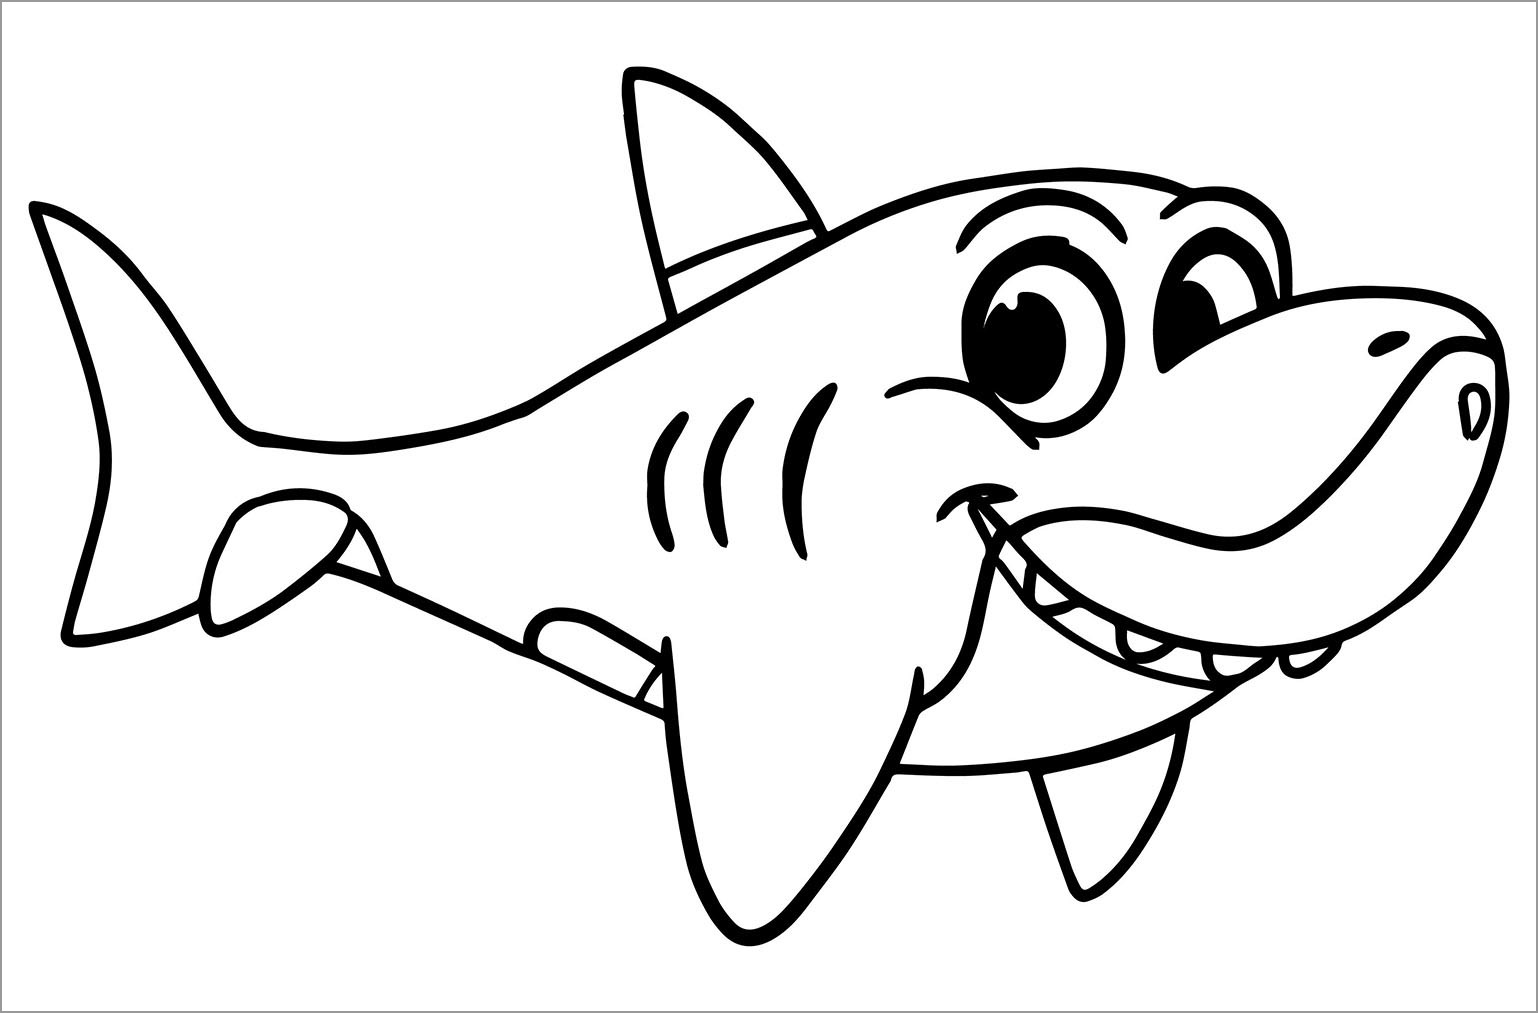 Printable Cute Shark Coloring Pages for Kids